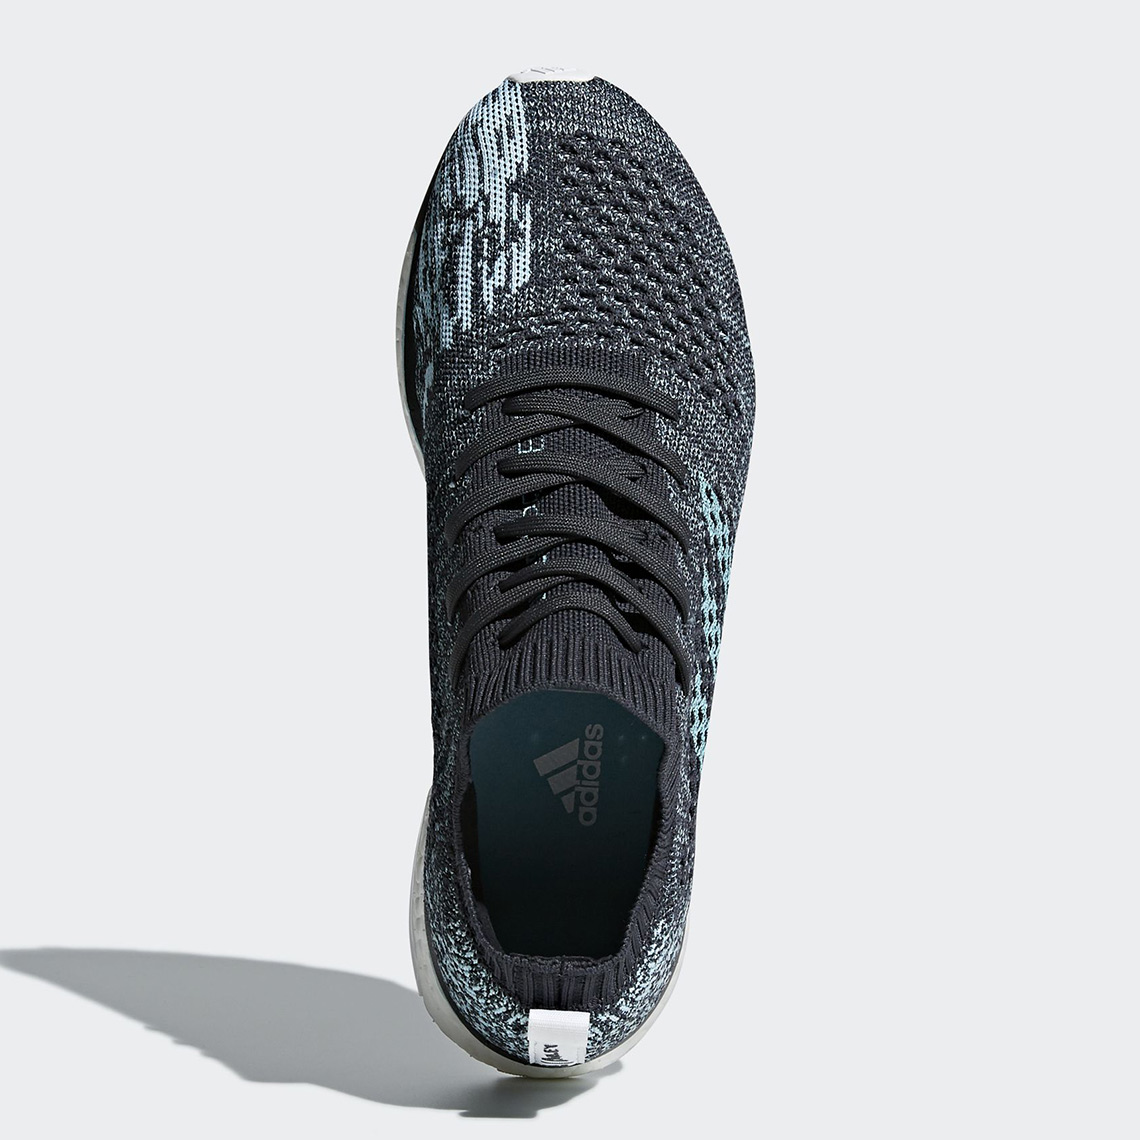 c4bb680e4 Parley For The Oceans And adidas To Release Five Shoe Collection In ...